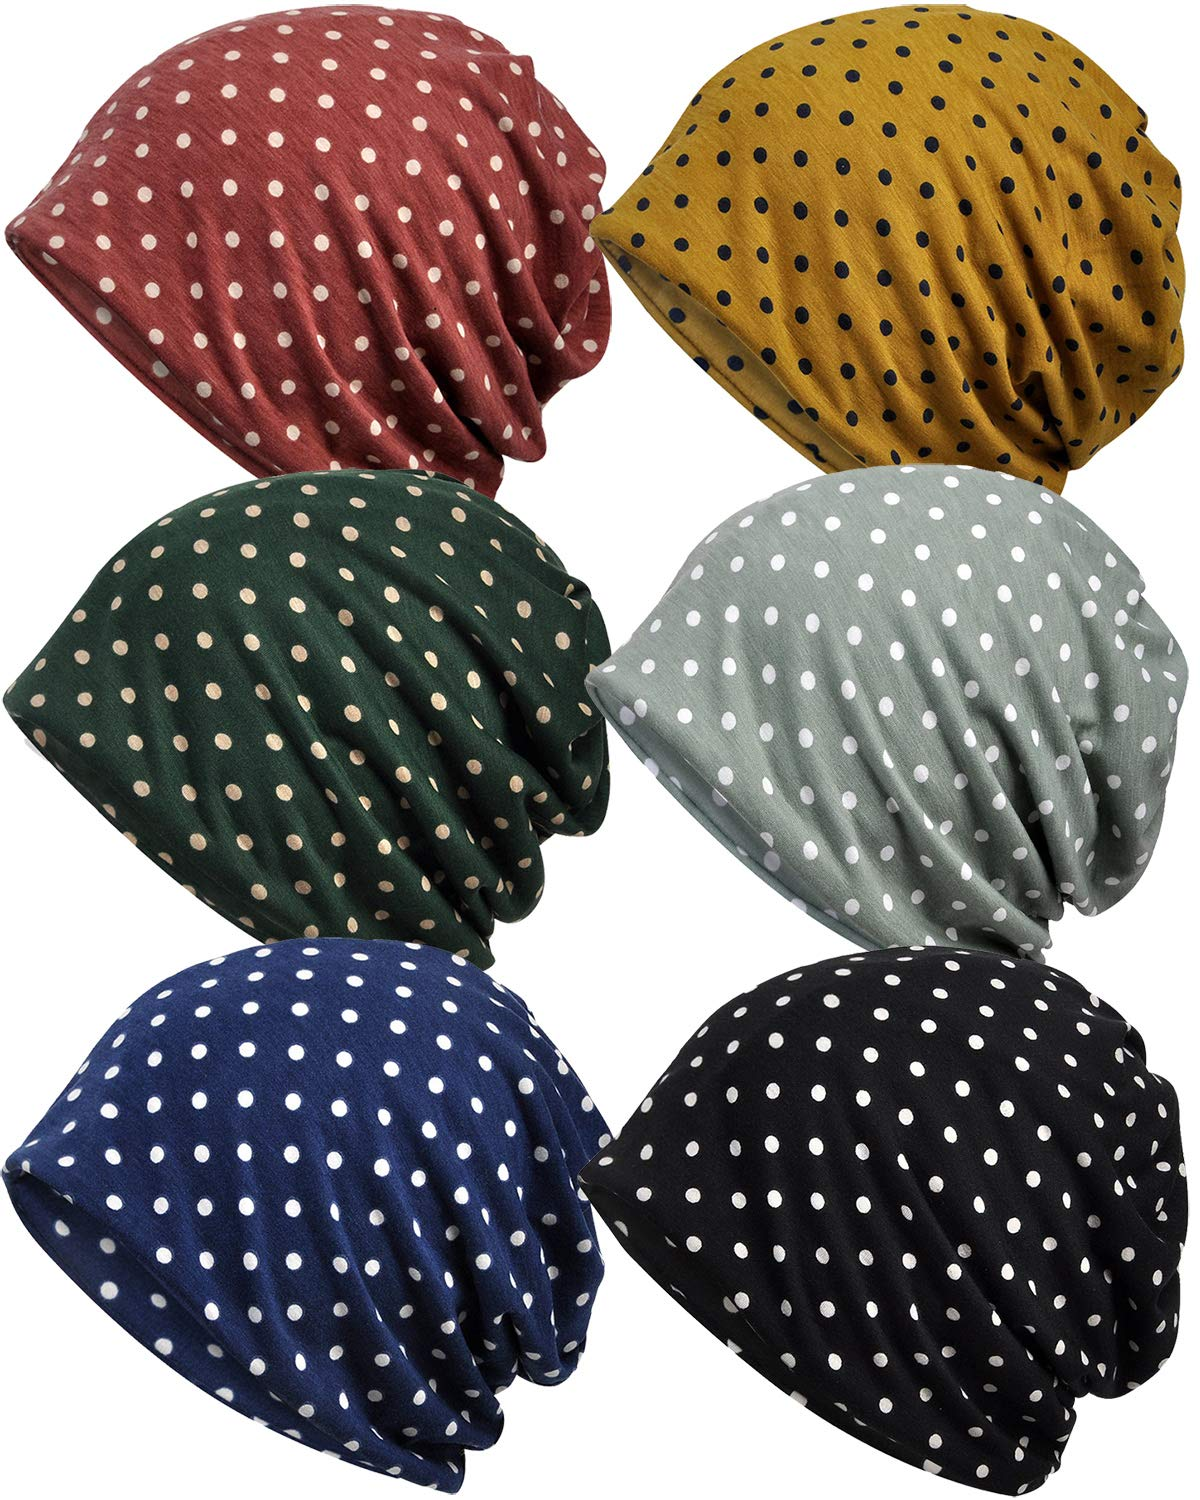 Ababalaya Women's Kinds of Lace/Floral/Print/Cotton Chemo Cap Hair Loss Beanie Nightcap Pack,Polka Dots-6 Pieces by Ababalaya